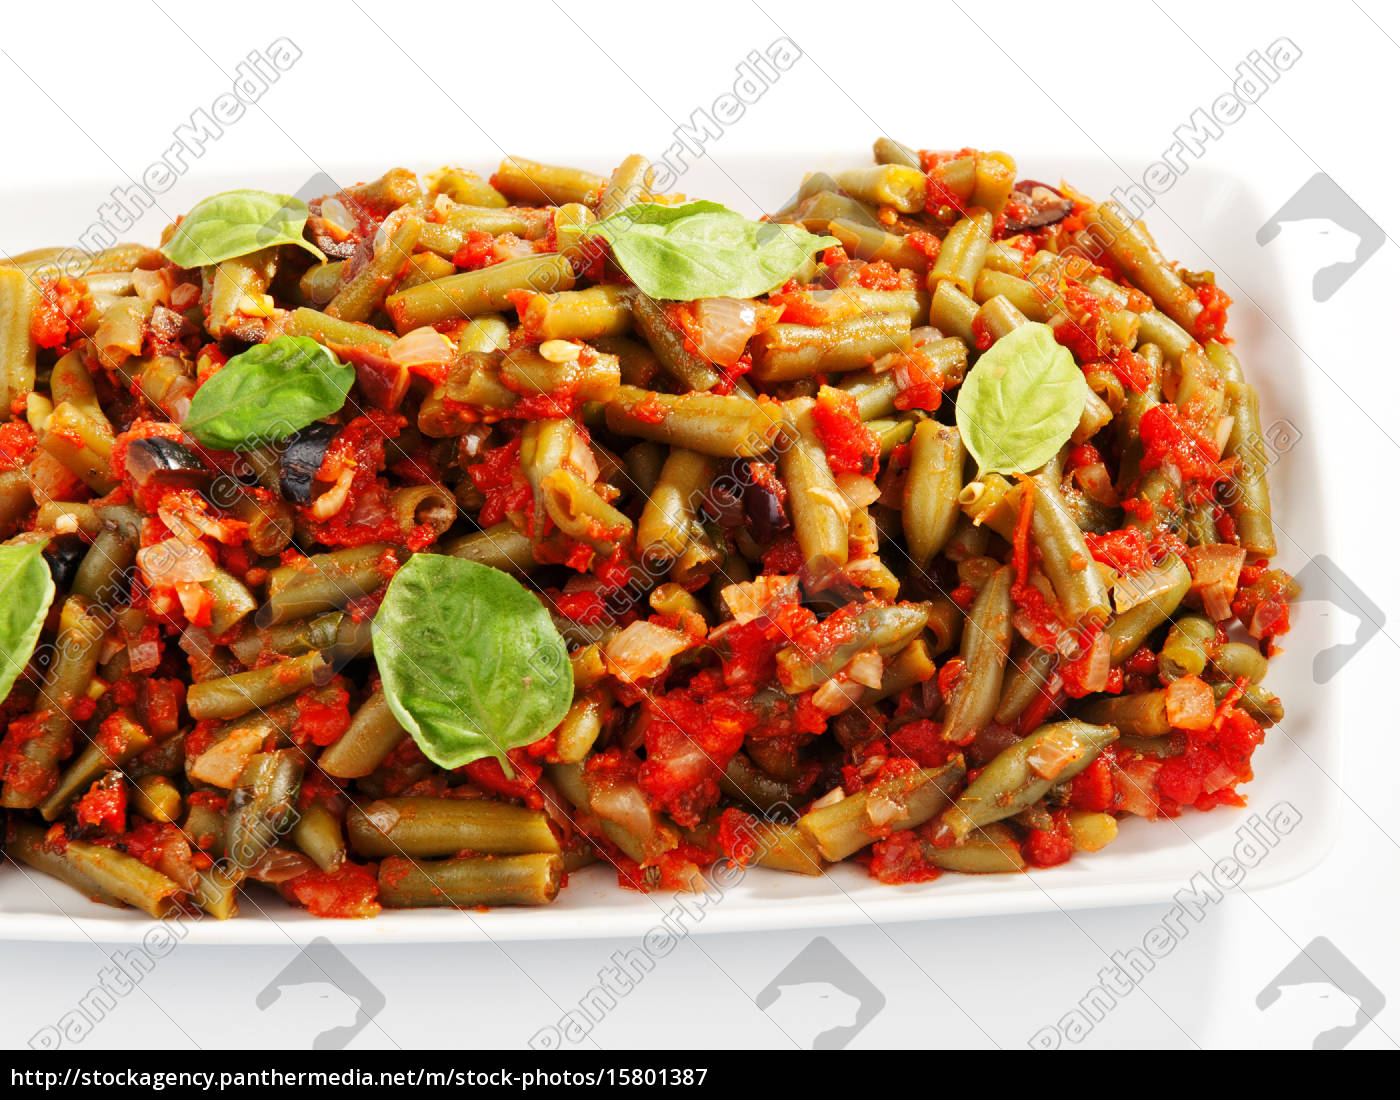 french, beans, and, tomato, casserole, french, beans - 15801387